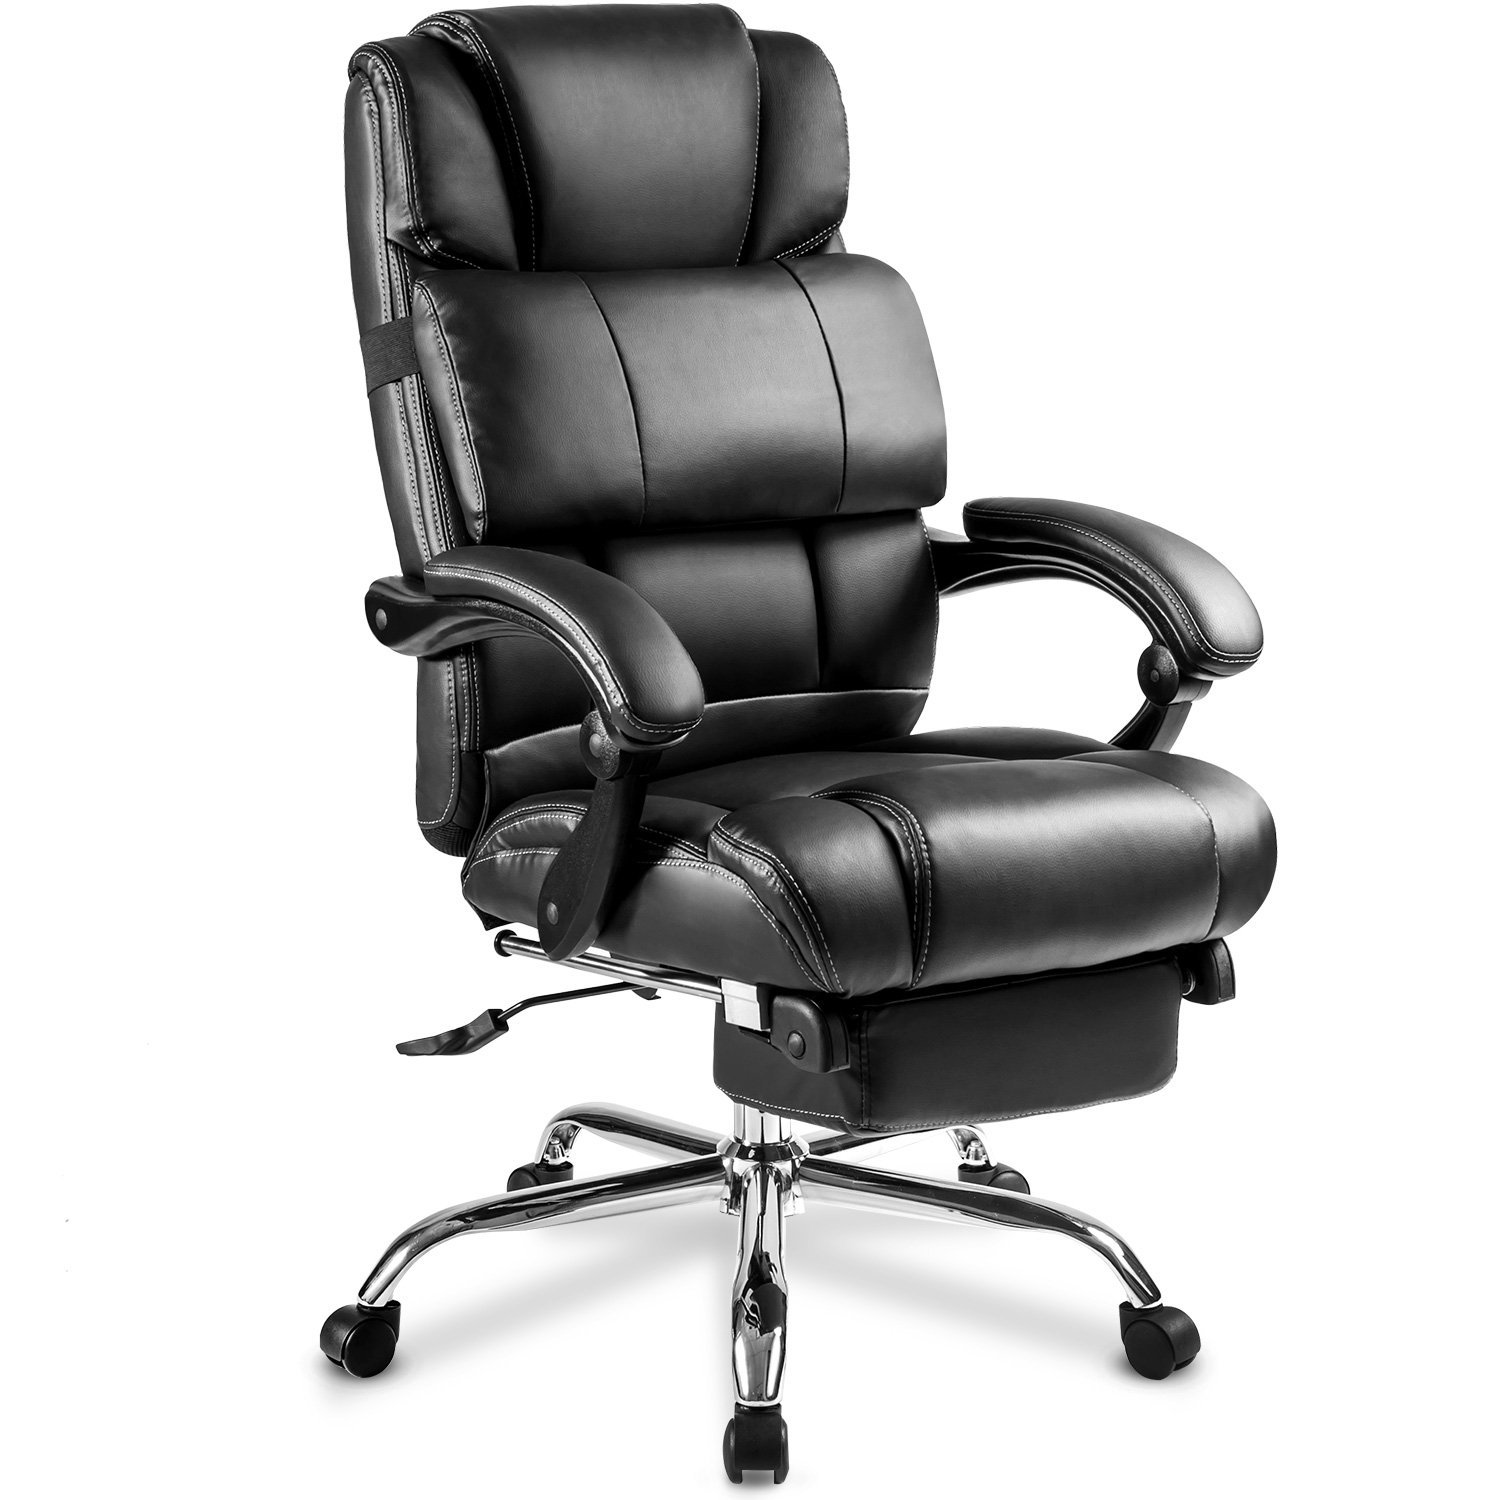 big and tall office chairs tufted chaise lounge chair merax ergonomic leather with footrest black